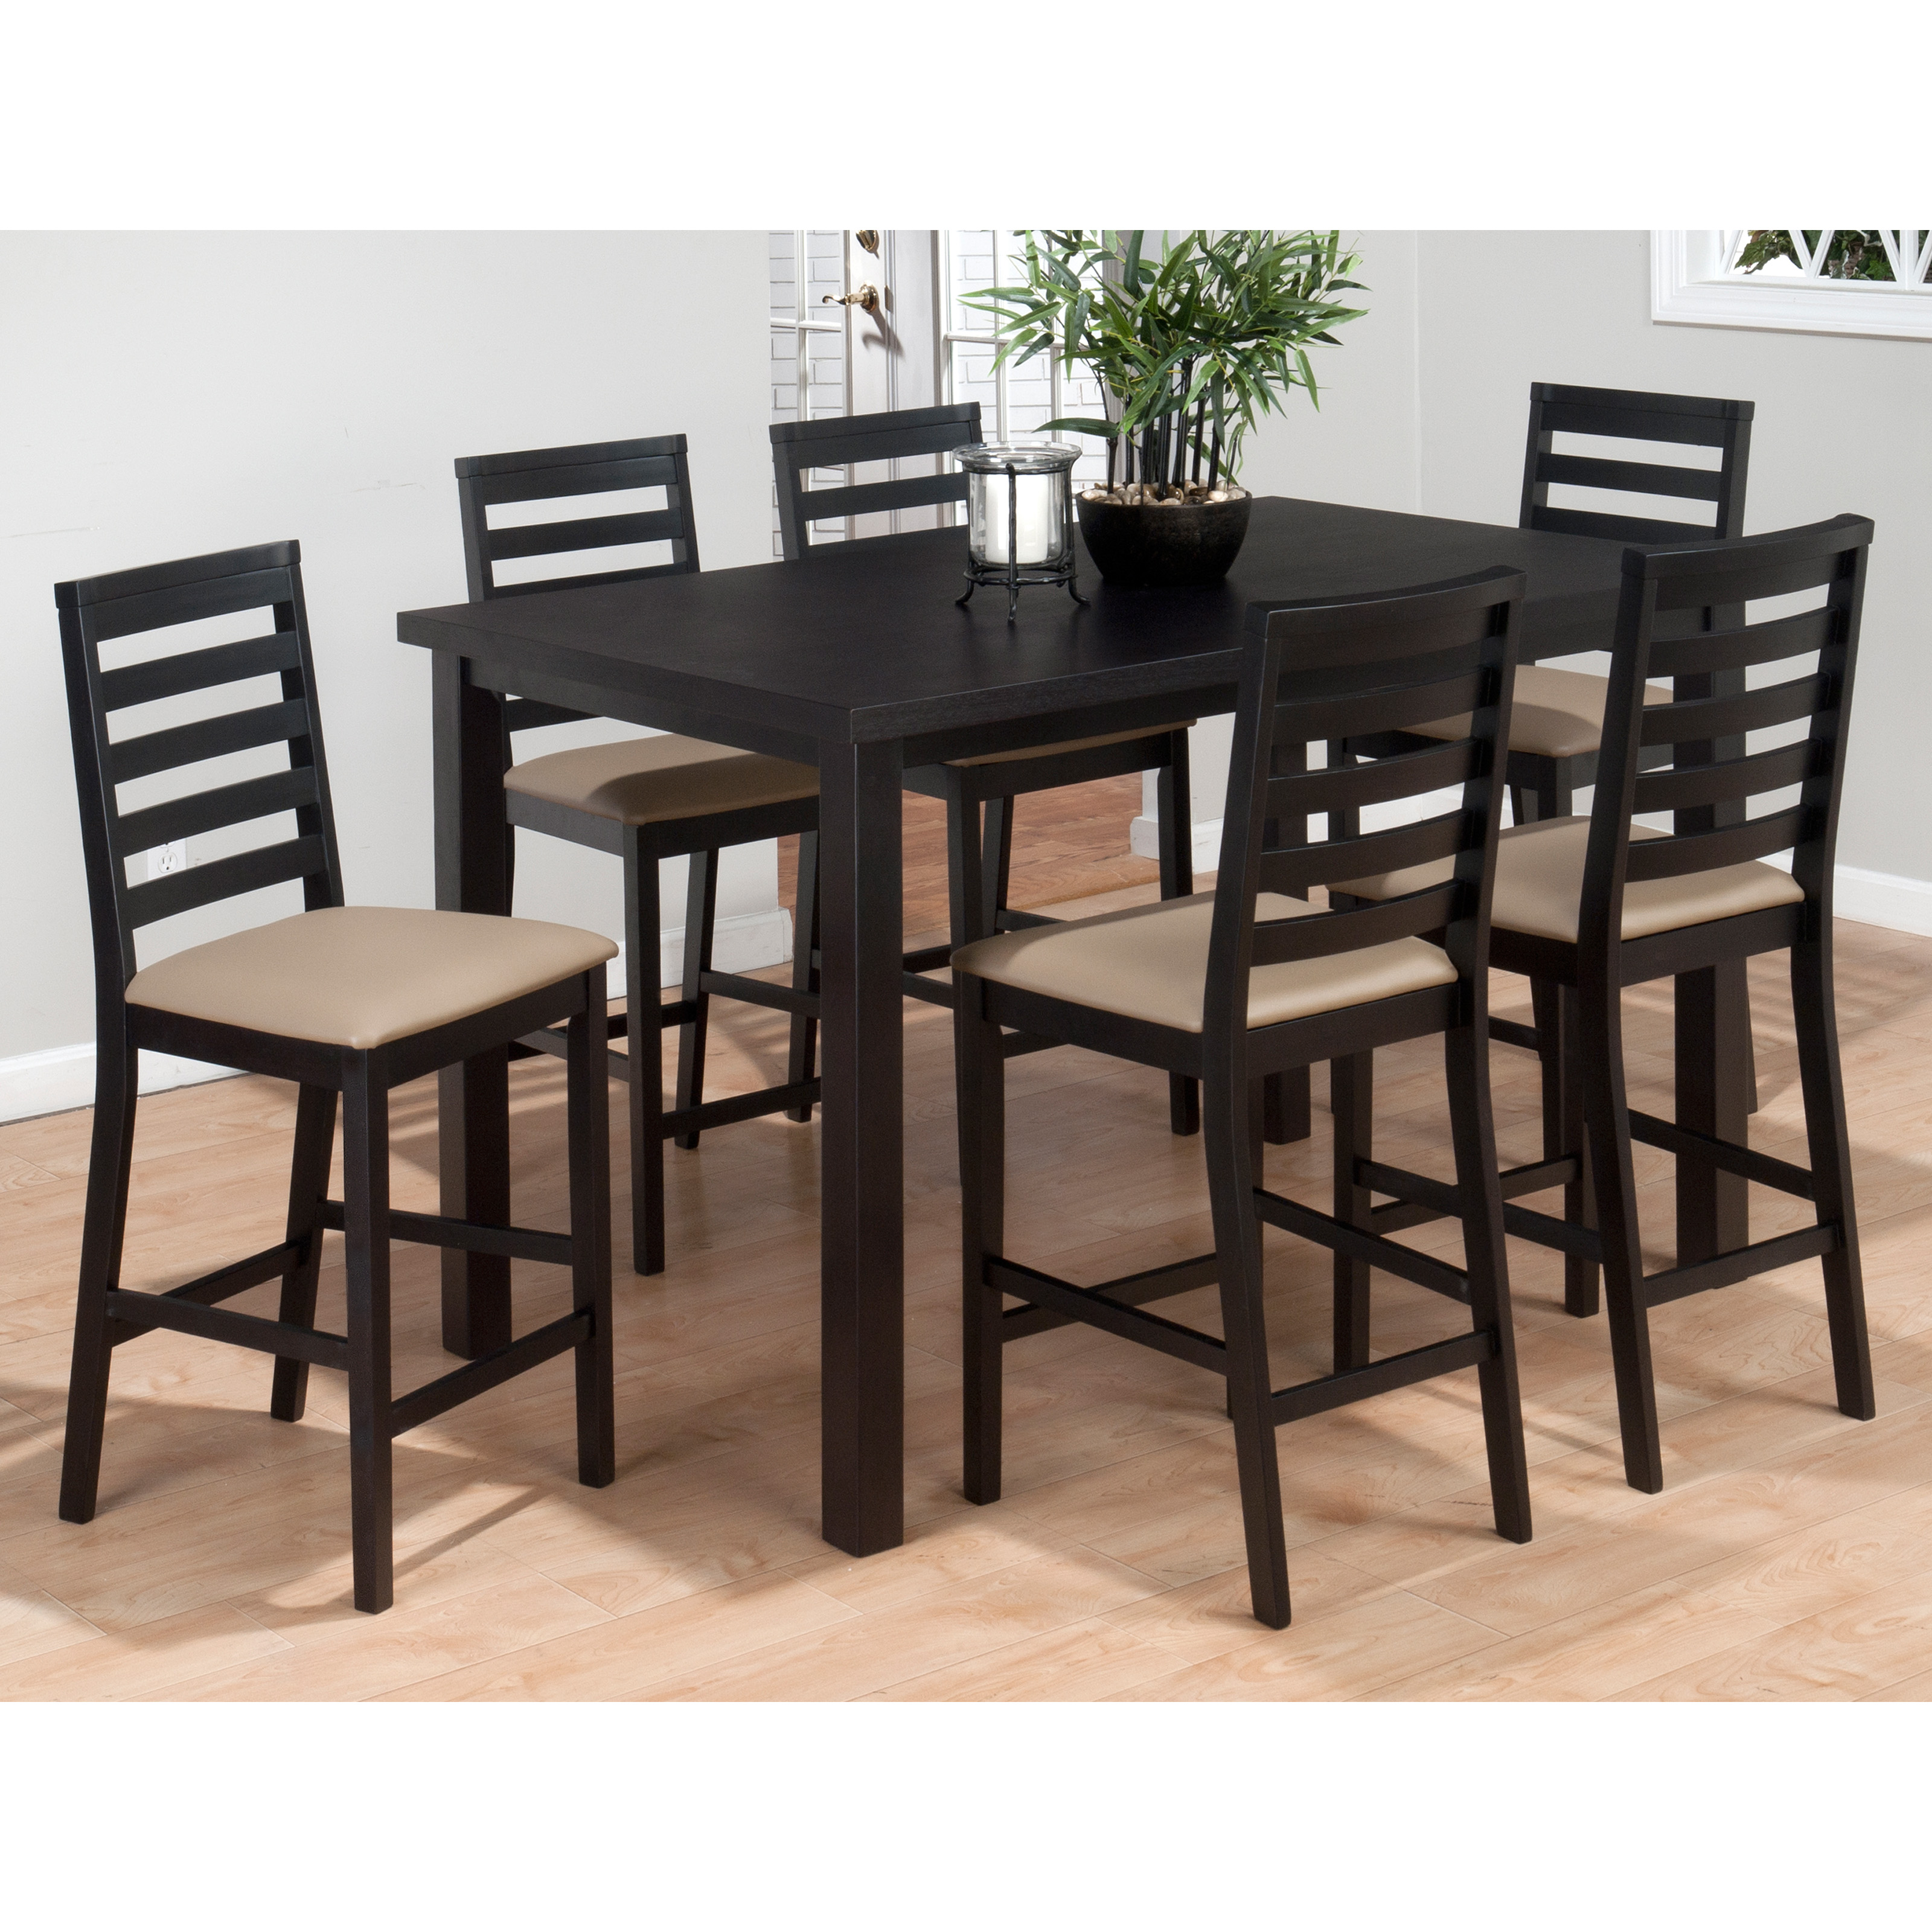 Counter Height Is : Jofran Bonn Town 7 Piece Counter Height Dining Set at Hayneedle